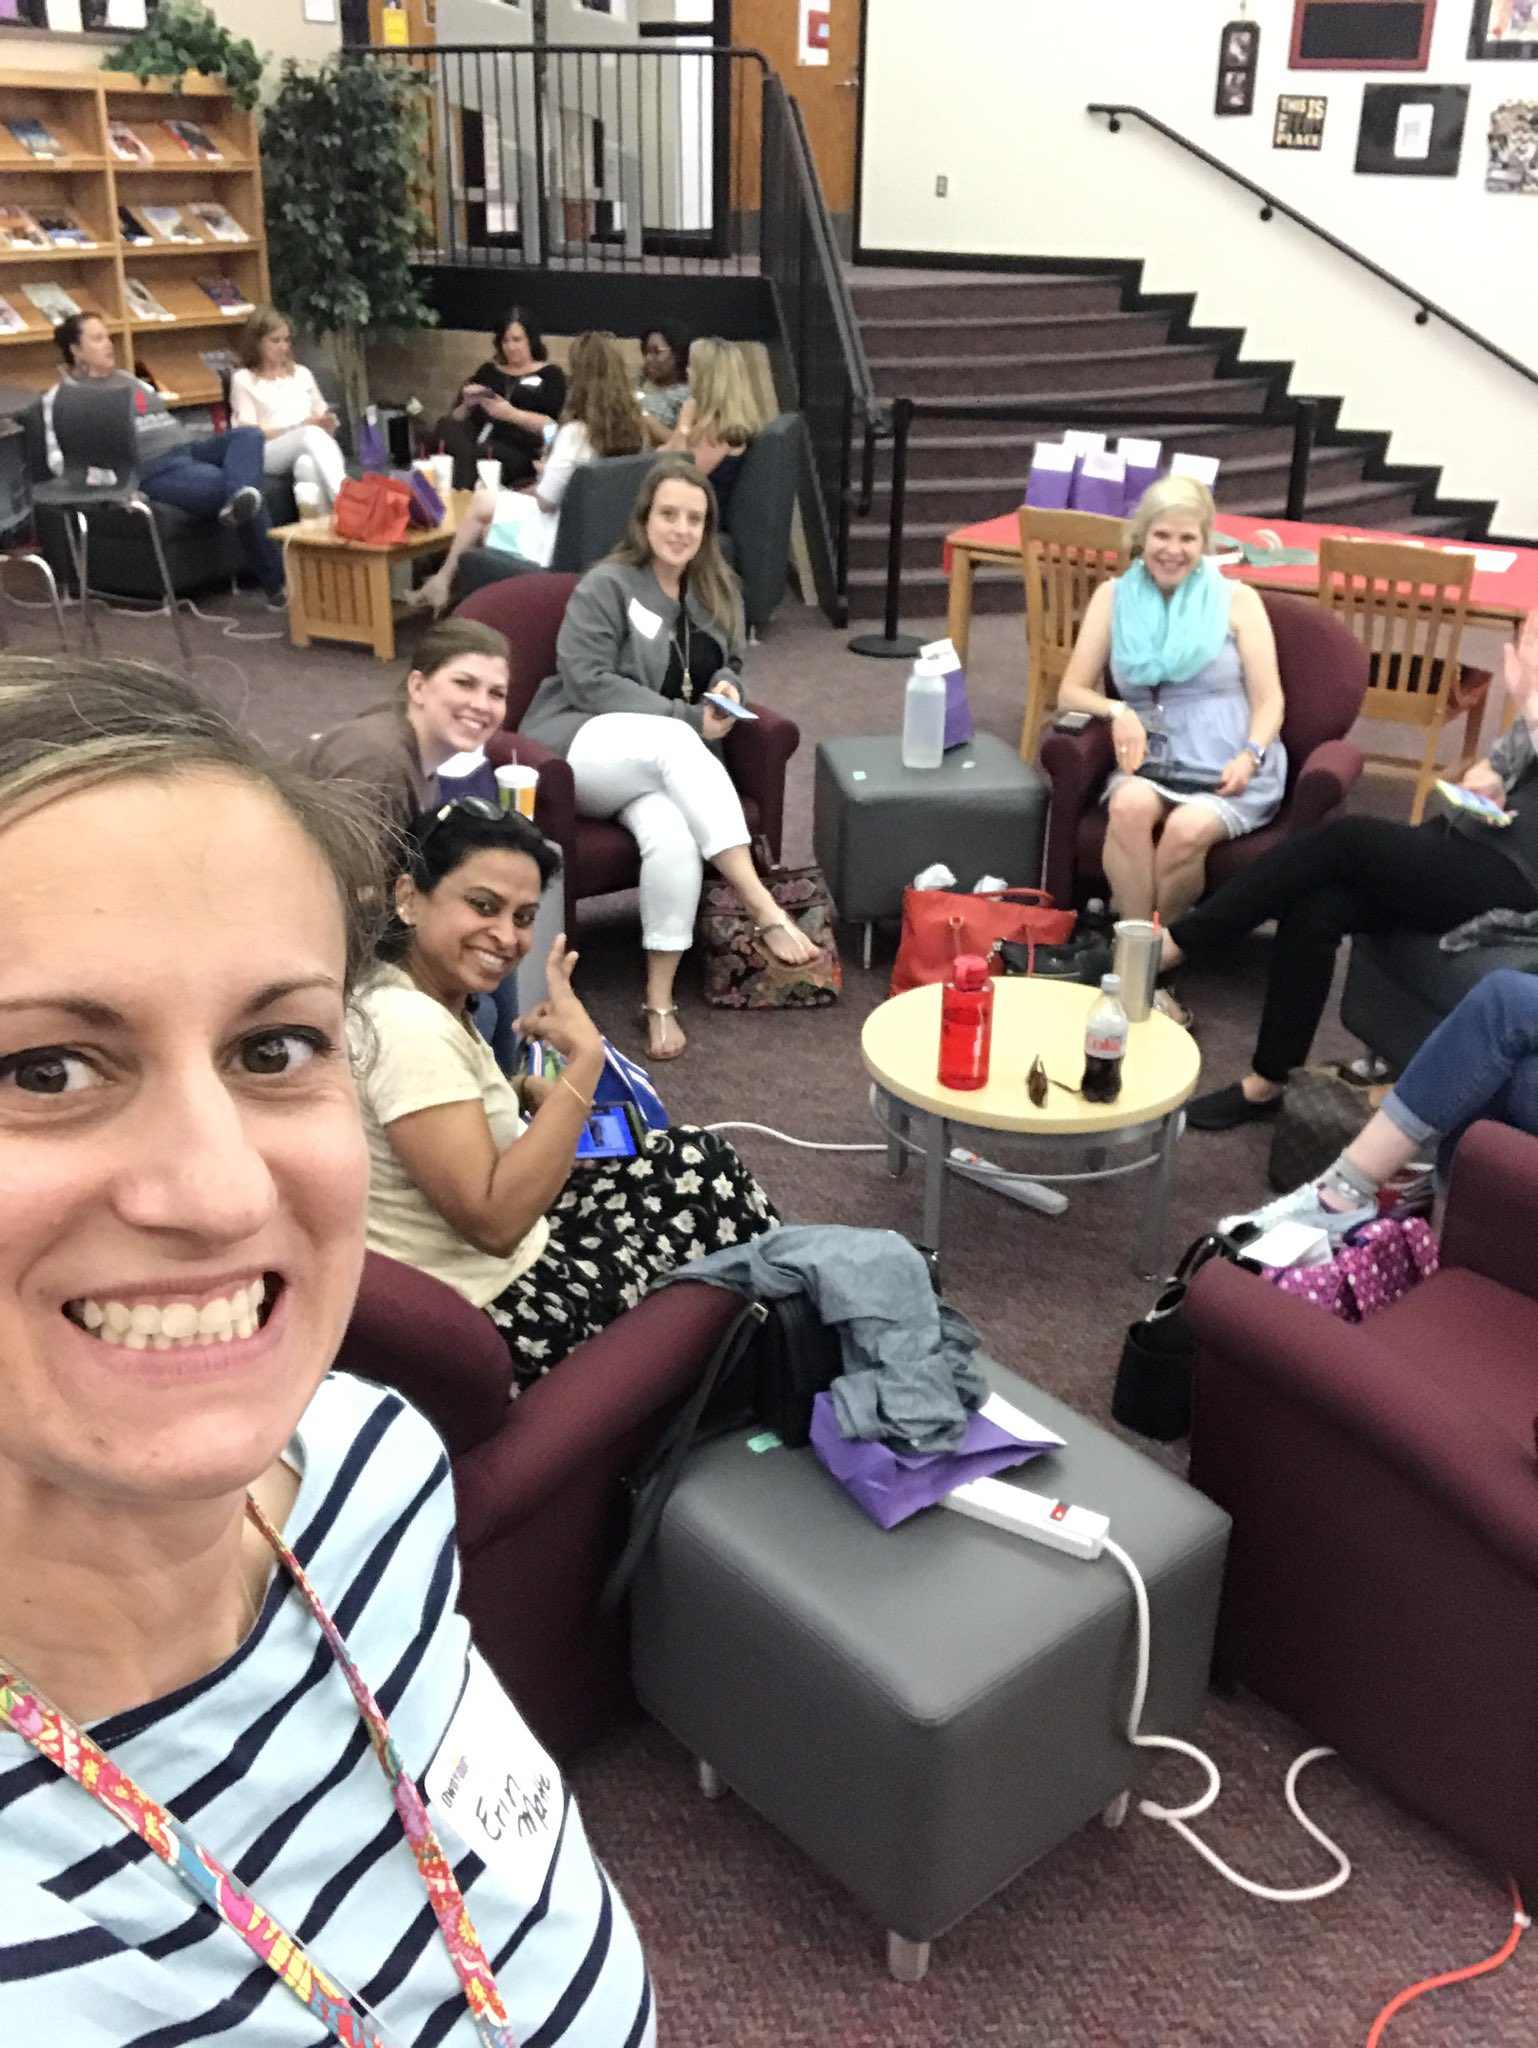 So excited to spend some time with these amazing @FISD_Libraries for the Tweet Up today at @LHSRedhawks #txla17 https://t.co/UpdyQy453D